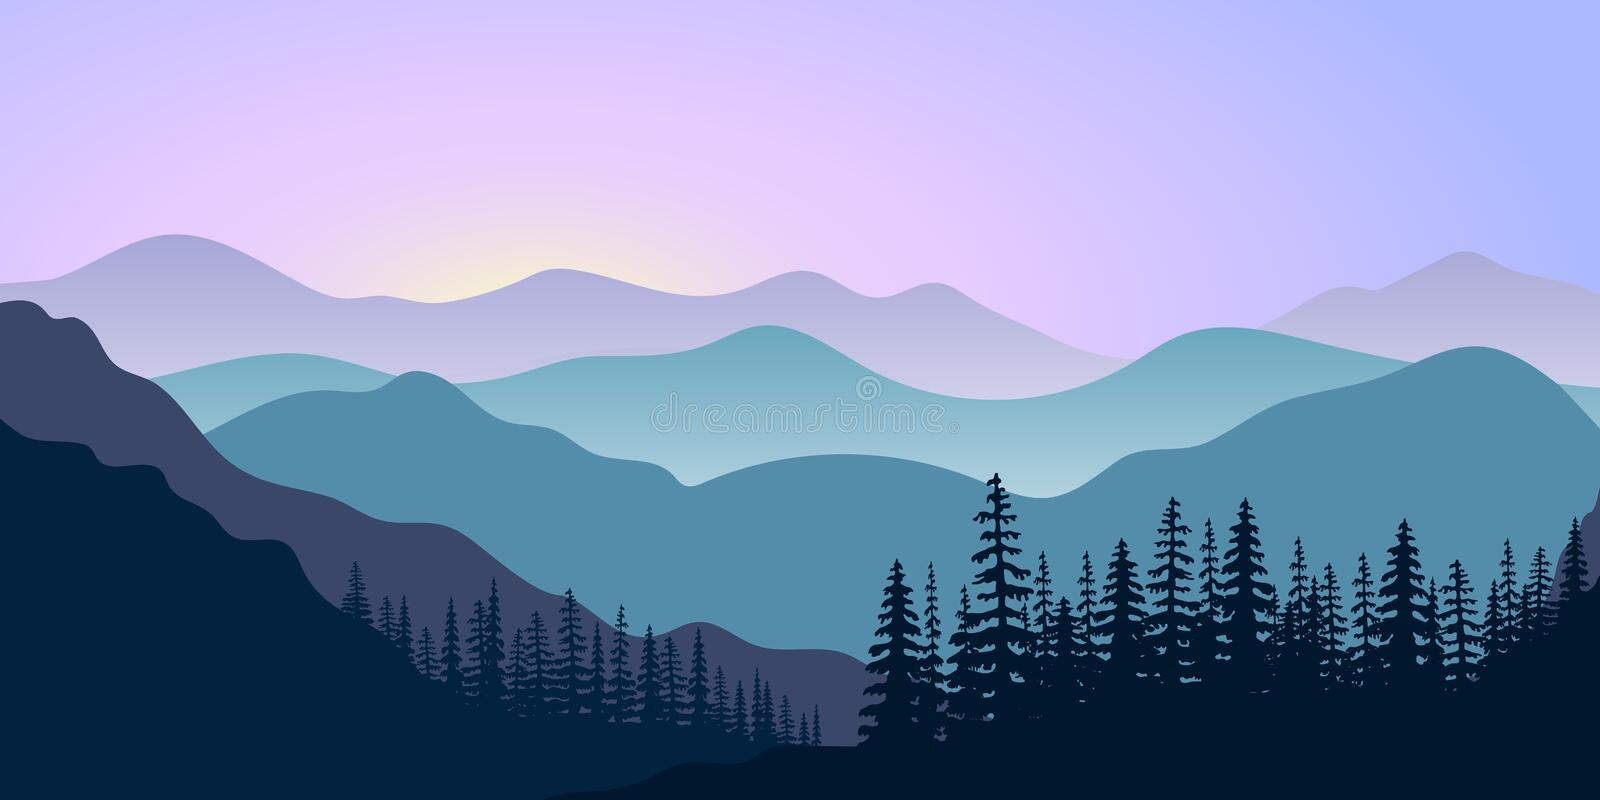 Landscape with silhouettes of mountains and forest at sunrise. Vector illustration stock illustration